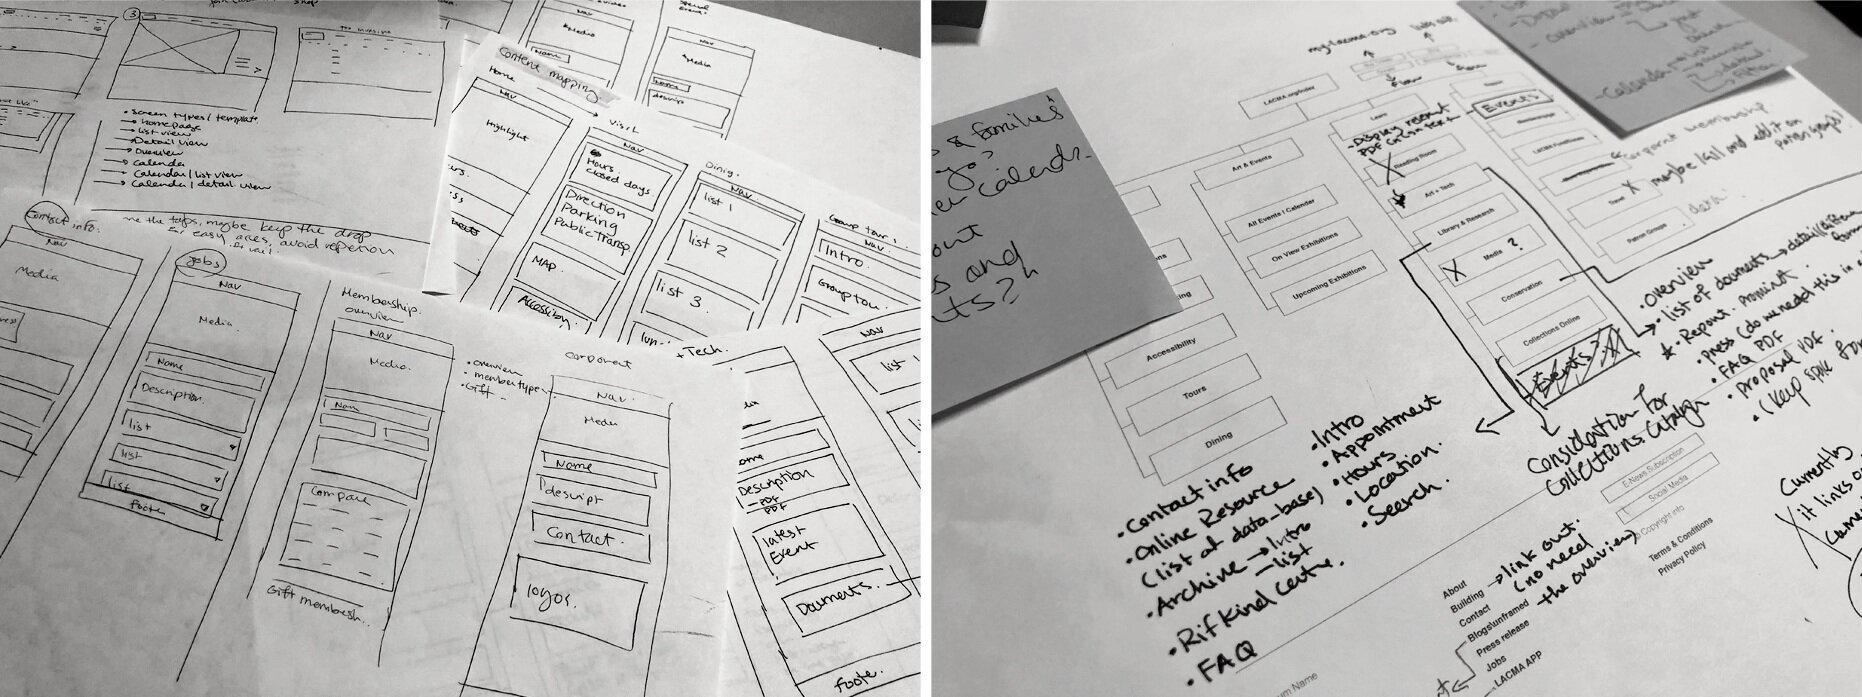 Initial sketches of the sitemap and userflows.